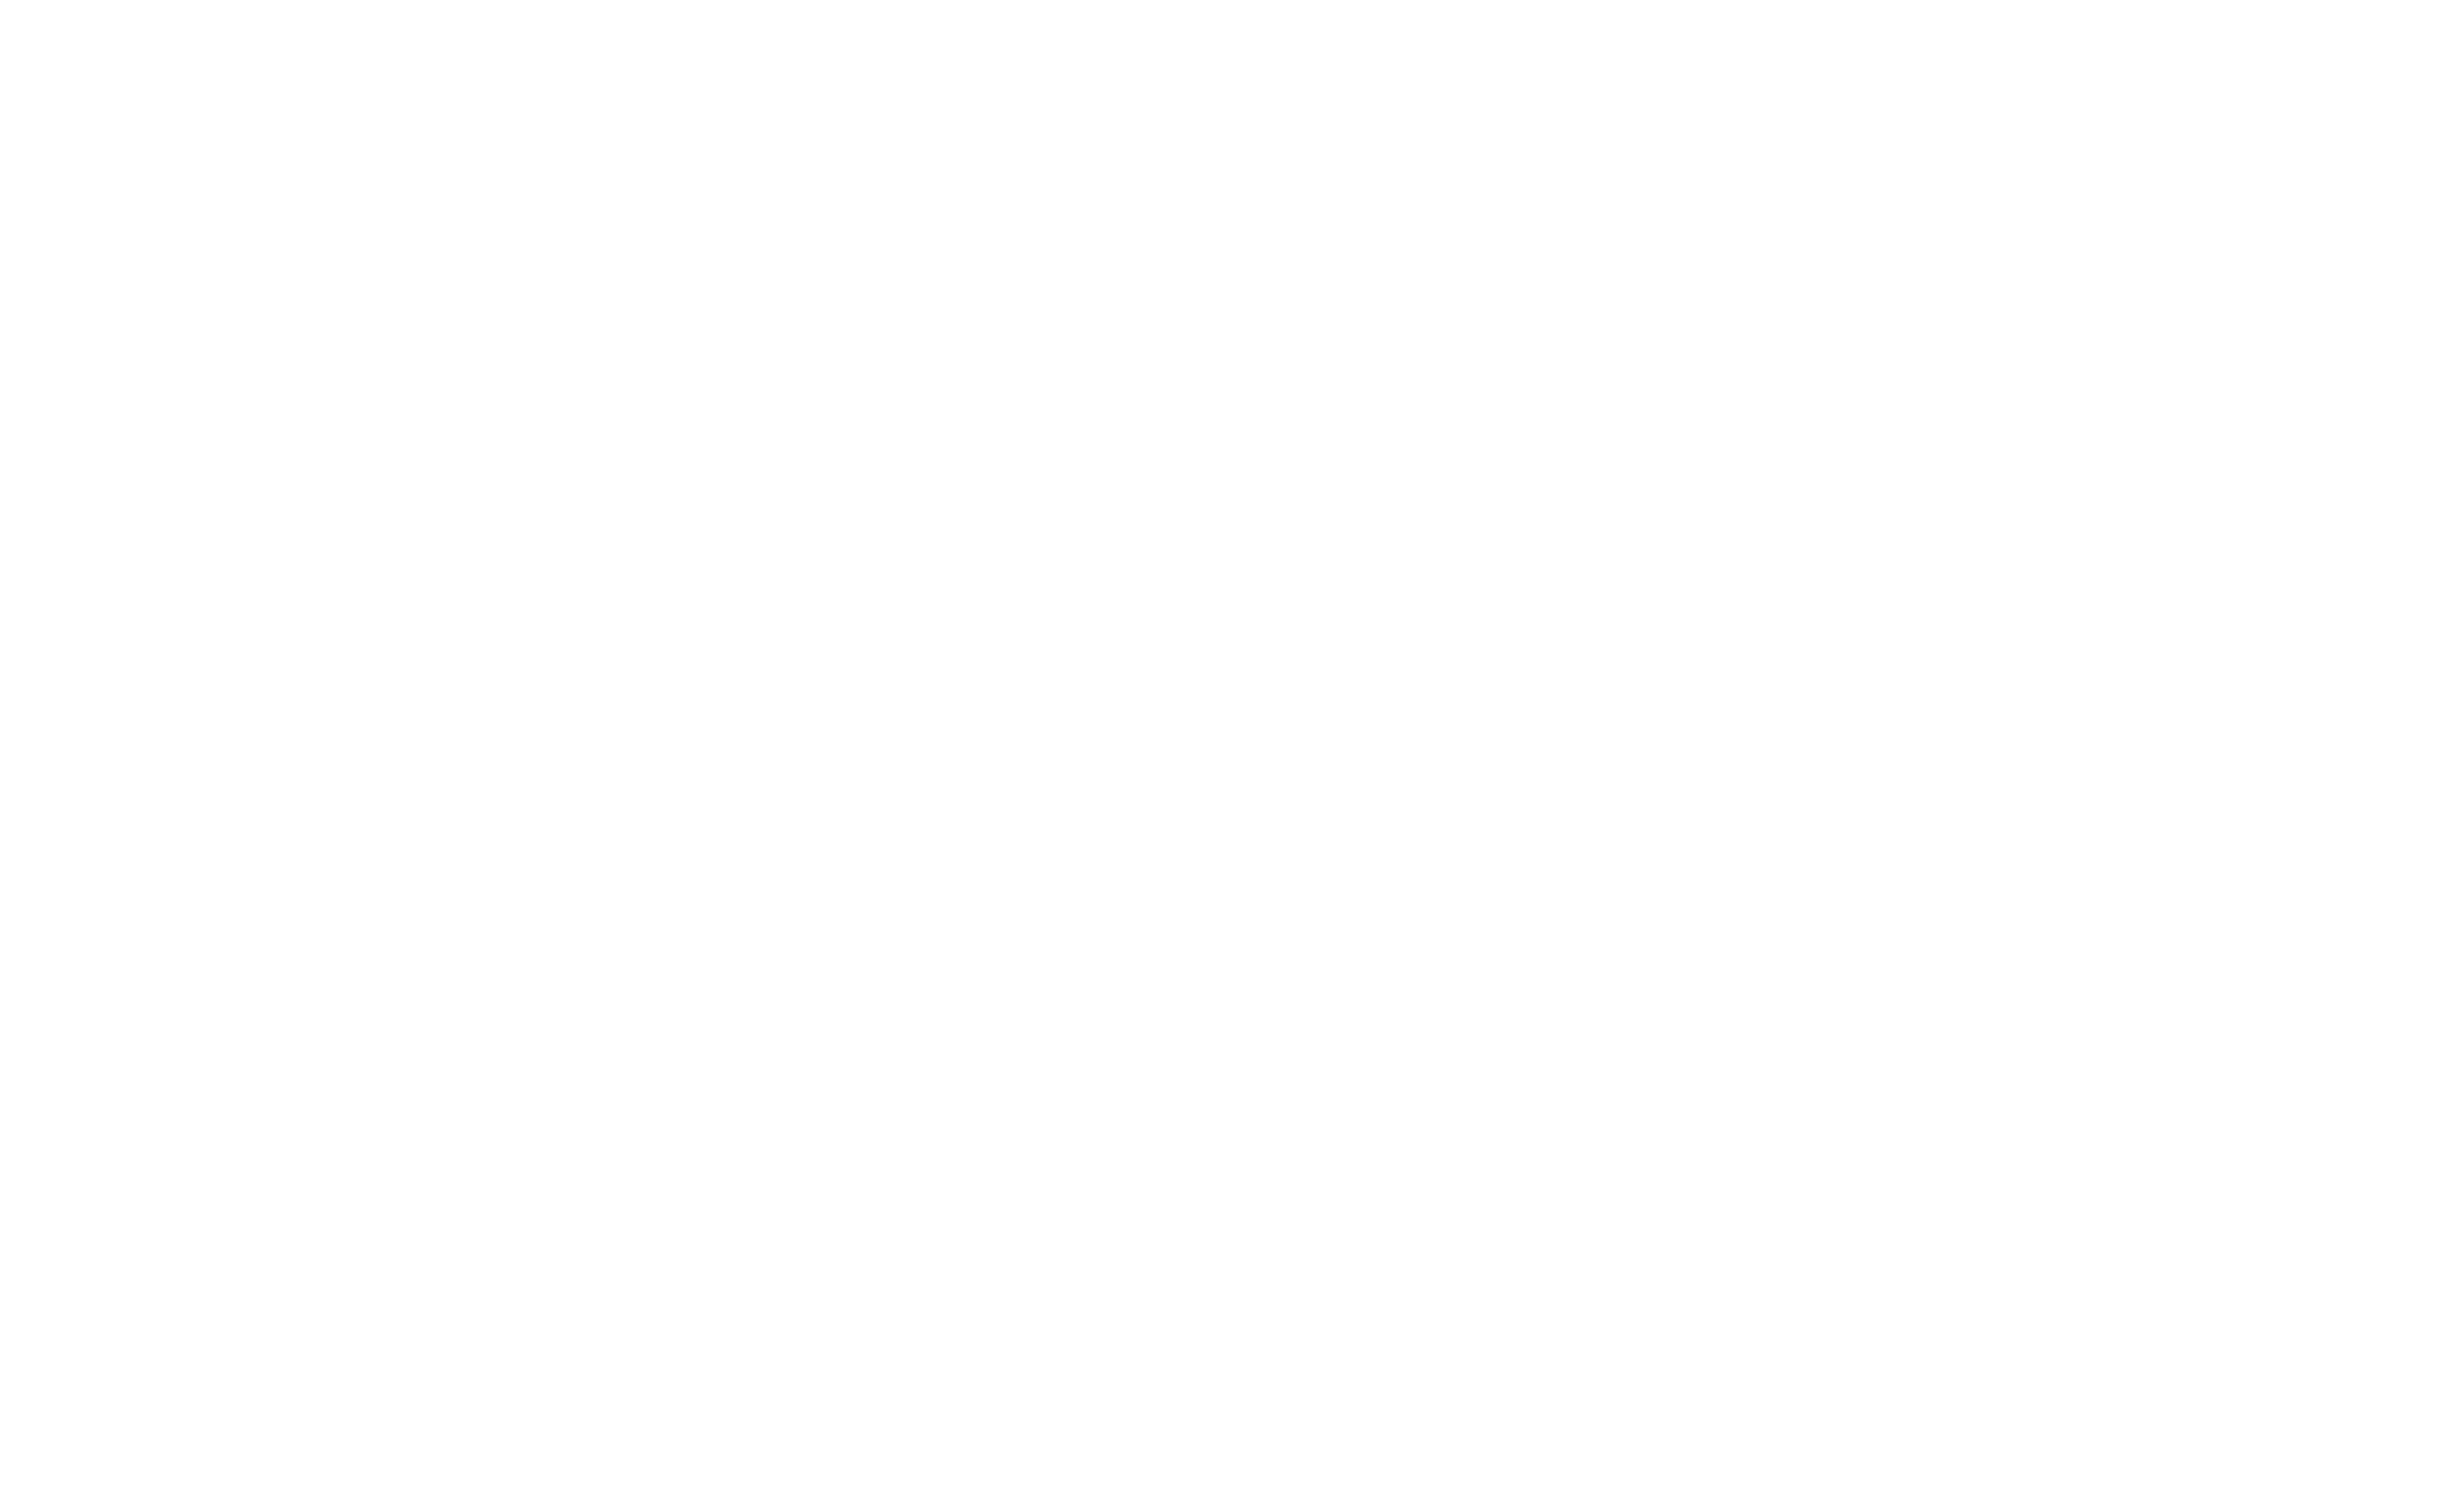 Face to face treatment rooms logo